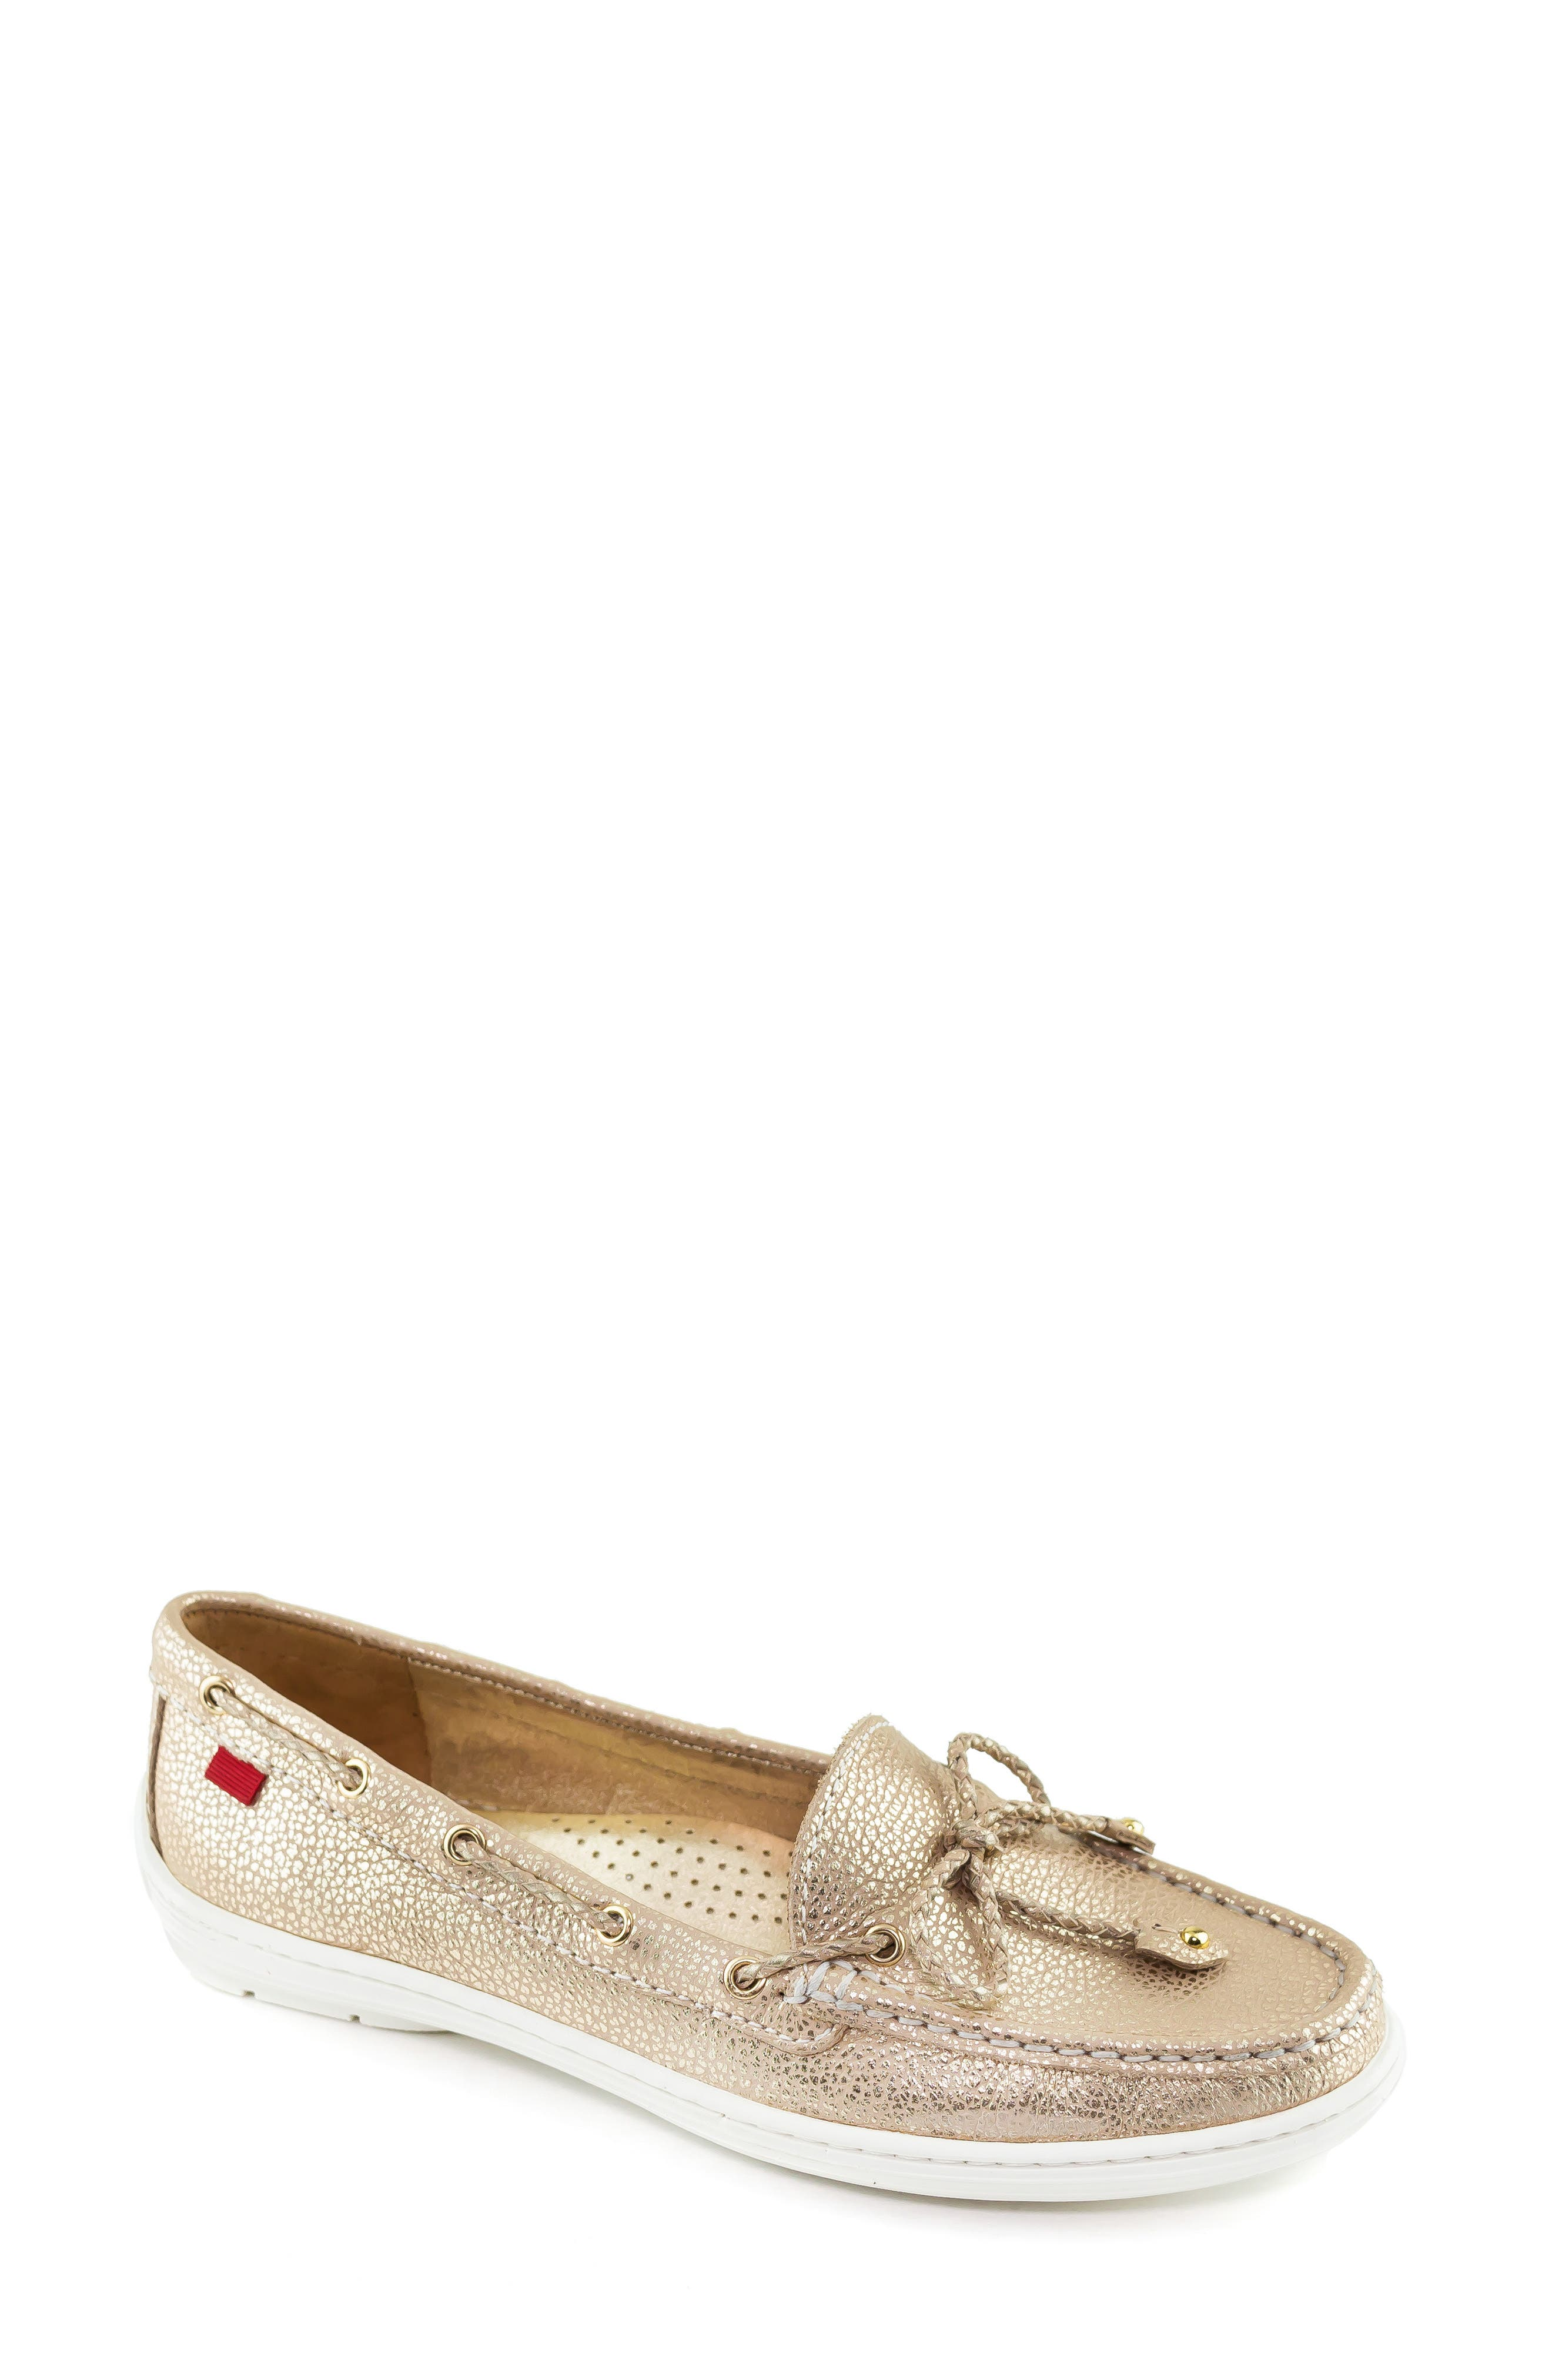 MARC JOSEPH NEW YORK Pacific Loafer, Main, color, GOLD LEATHER